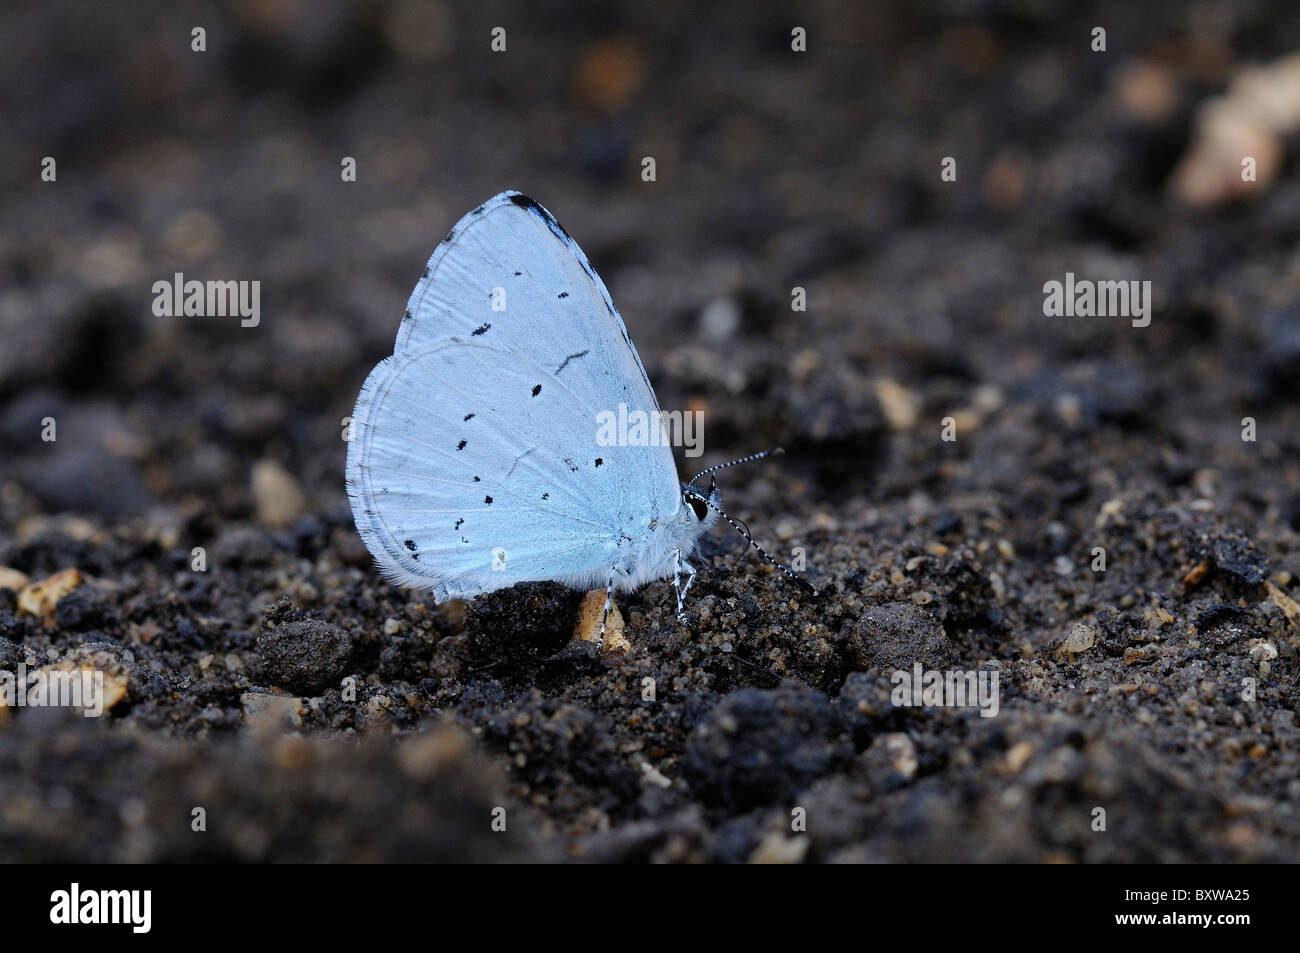 Holly Blue Butterfly (Calestrina argiolus) adulte sur le terrain qui se nourrissent de minéraux, Oxfordshire, Photo Stock